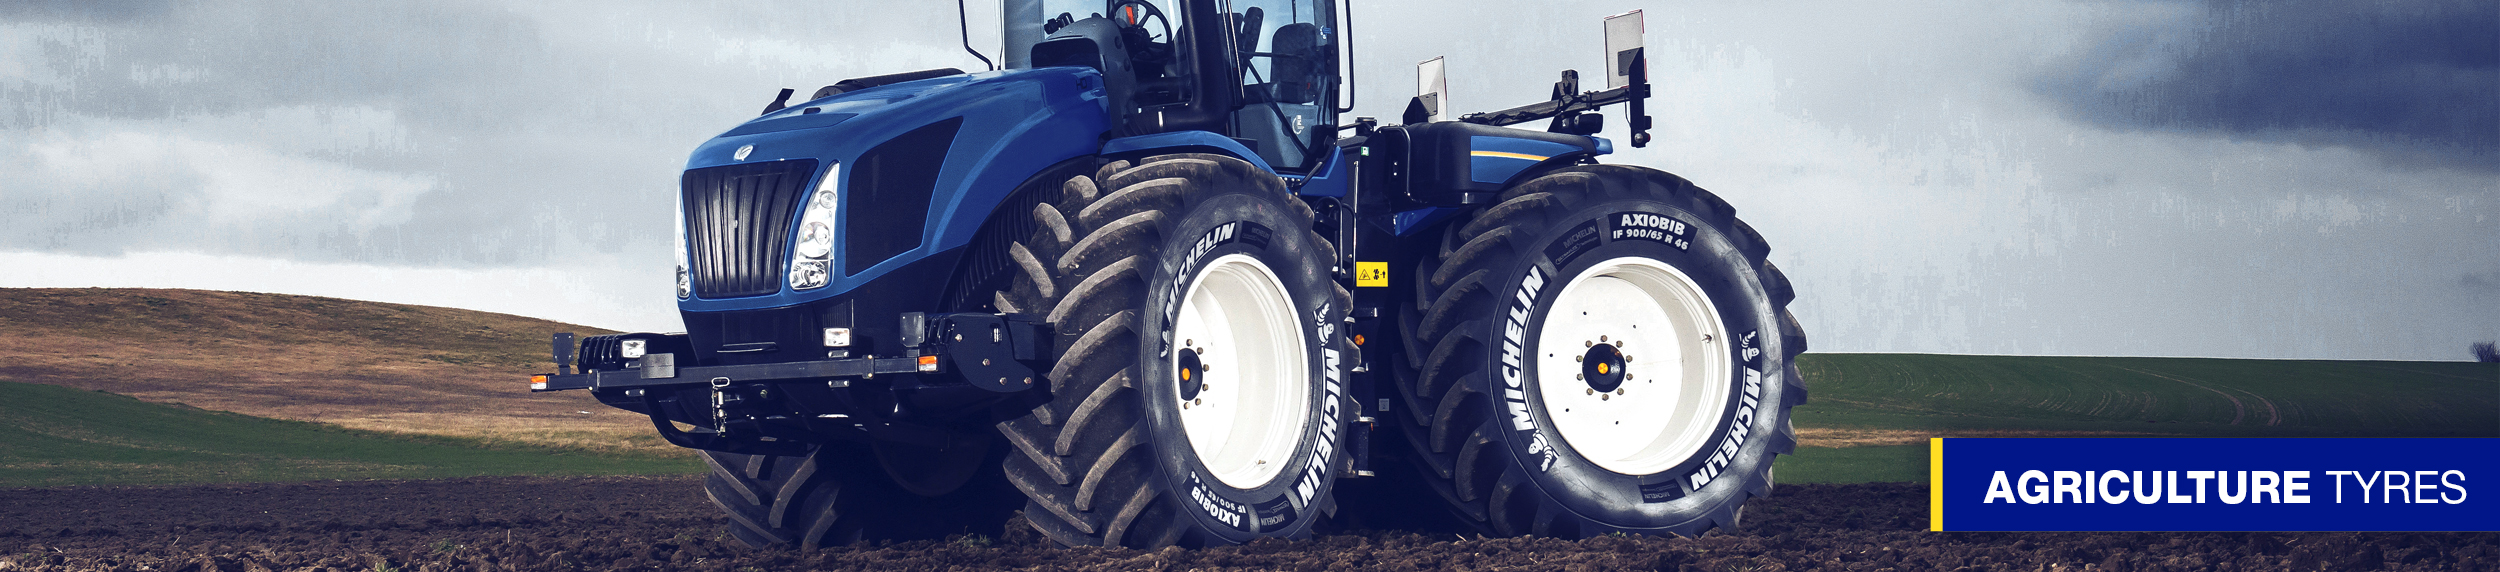 AGRICULTURE-TYRES